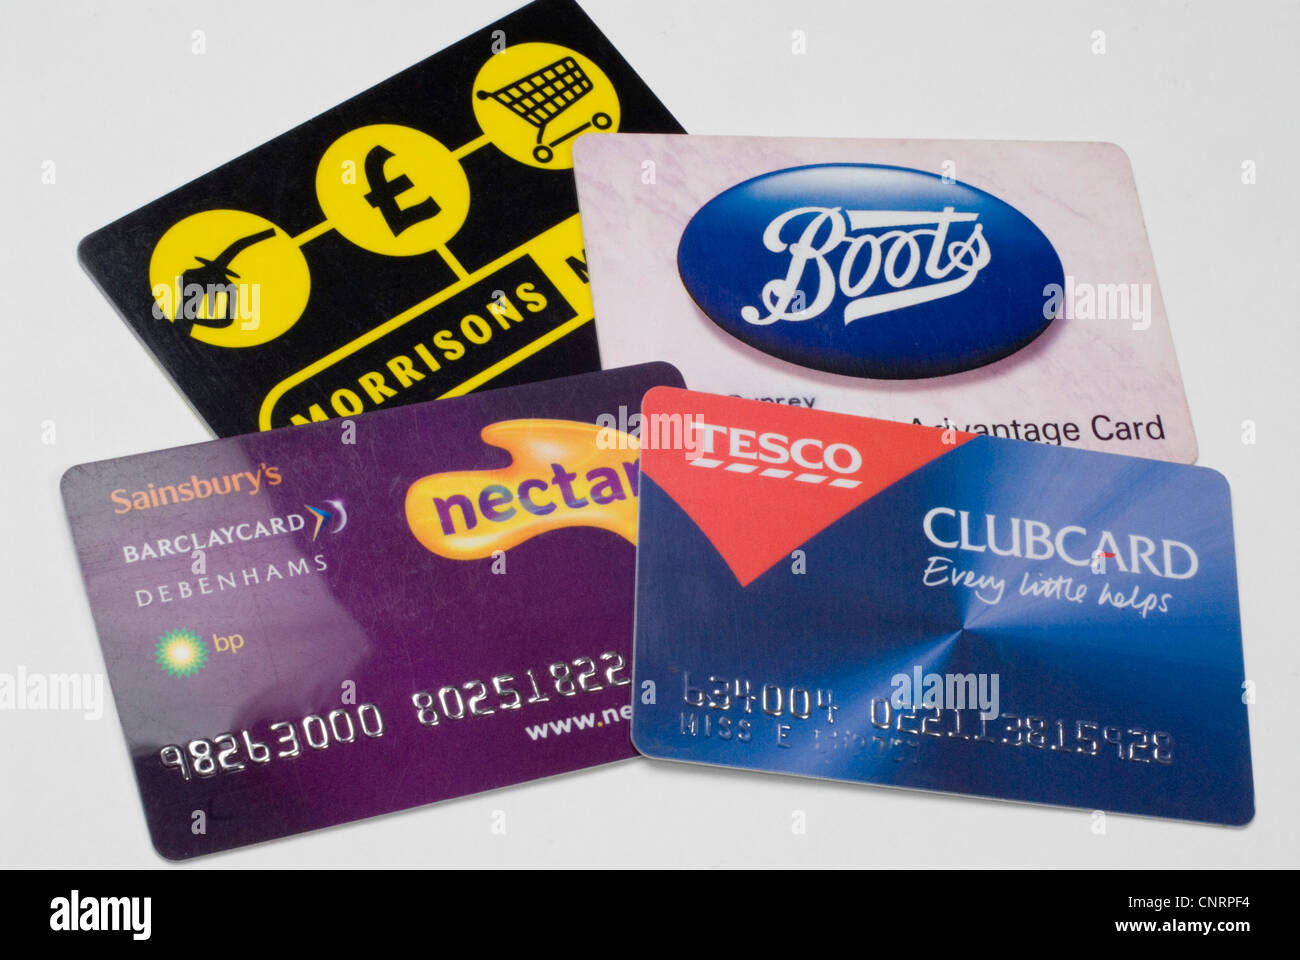 Store Loyalty Cards Stock Photo: 47851080 - Alamy